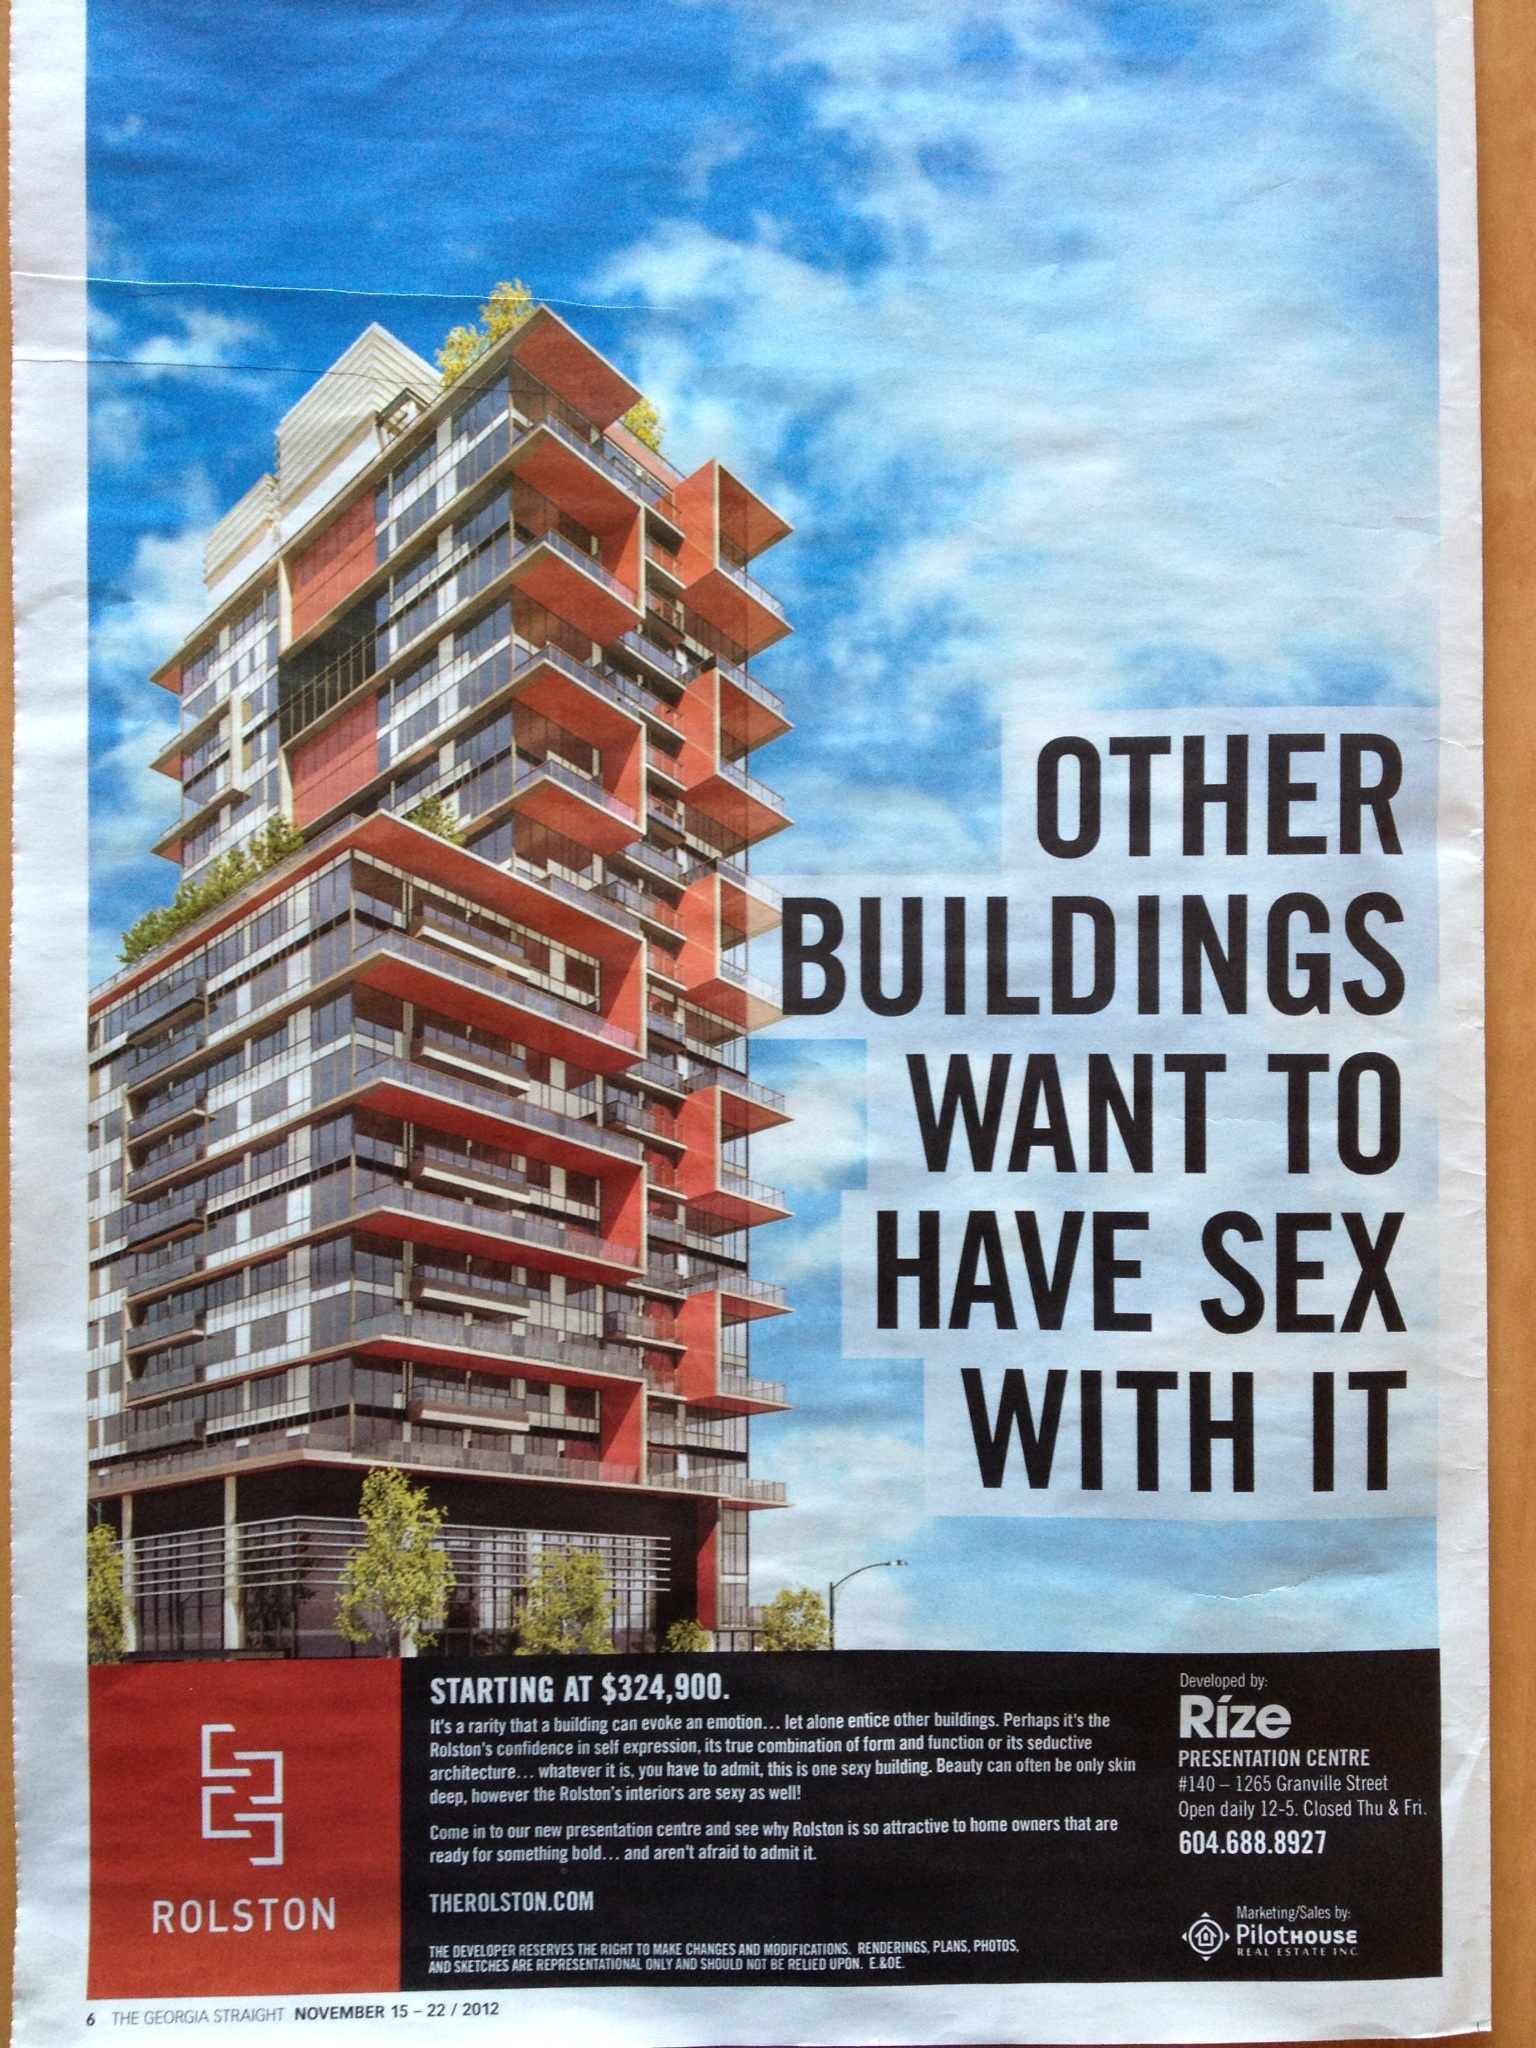 Sexy building design, provocative advertising